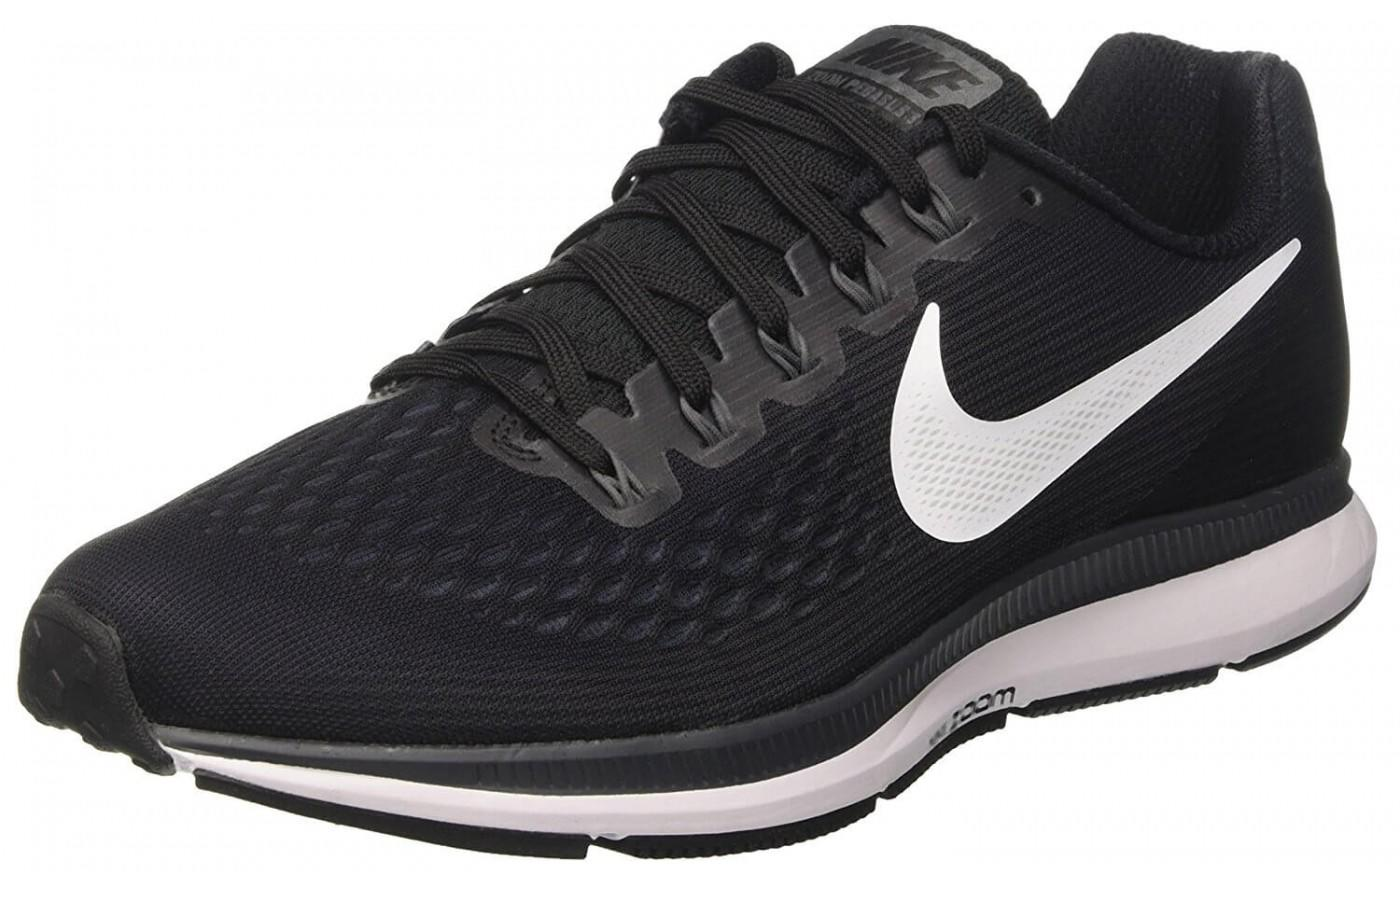 594550e15e8 the upper of the Nike Air Zoom Pegasus 34 is made of breathable Flymesh ...